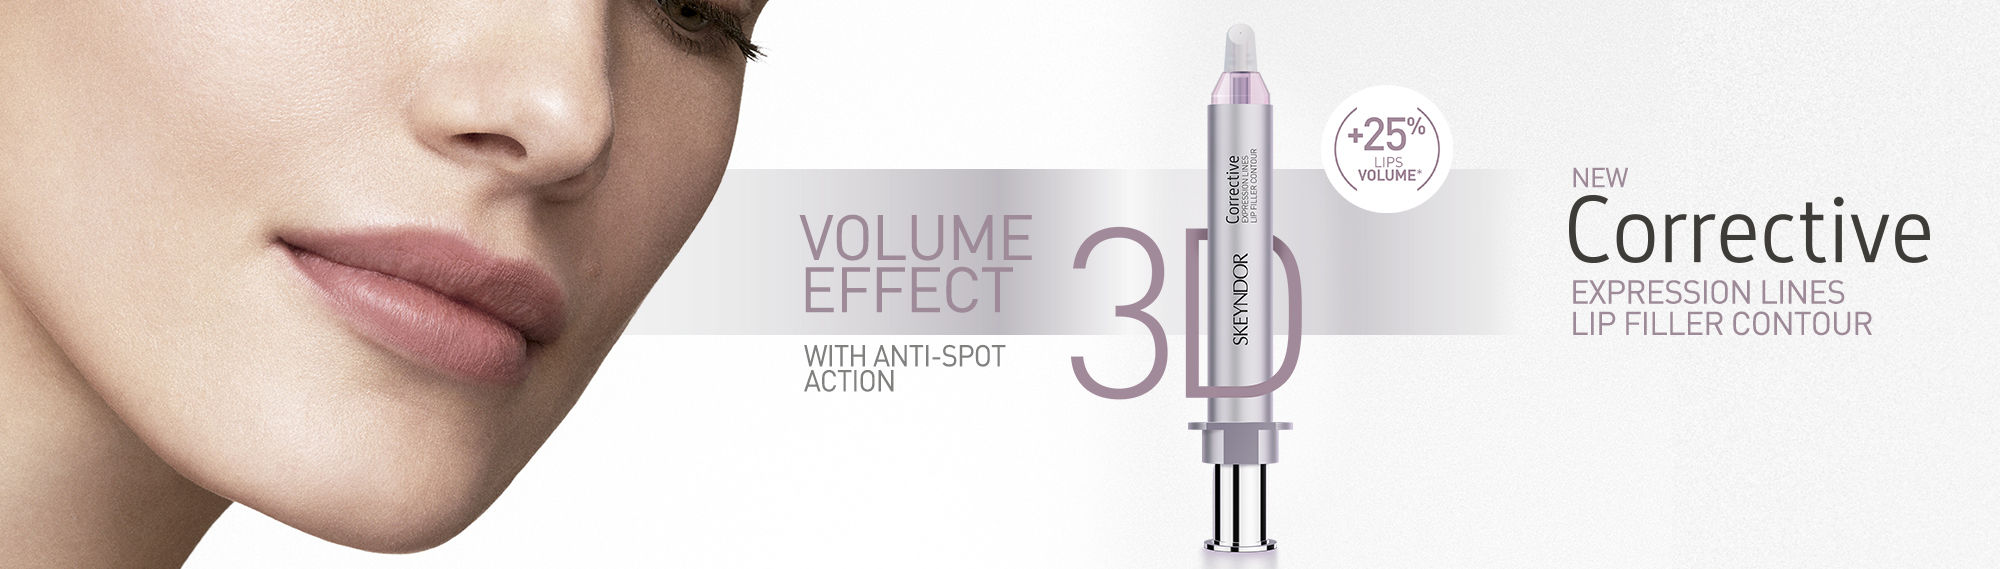 New Corrective expression lines lip filler contour. Volume effect 3D with anti-spot action.